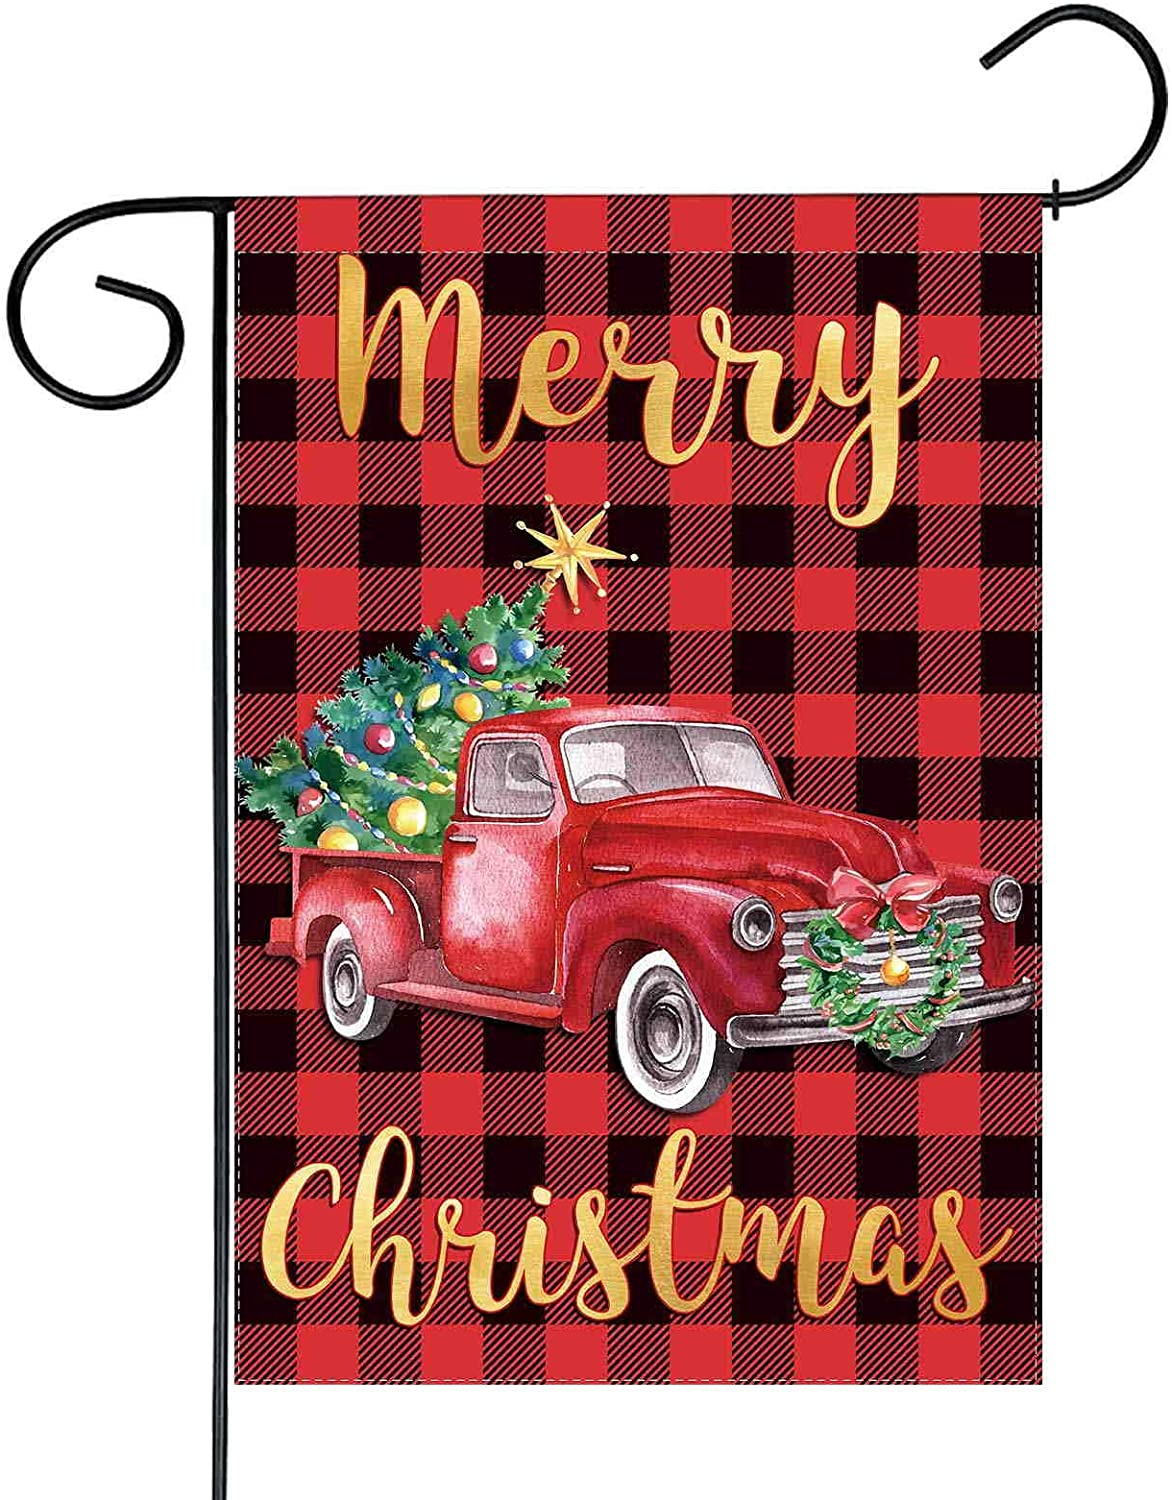 Funnytree Merry Christmas Red Truck Garden Flag Buffalo Plaid Outdoor Decor Xmas Tree Winter New Year Yard Flags Farmhouse Decoration Vertical Double Sided 12x18in